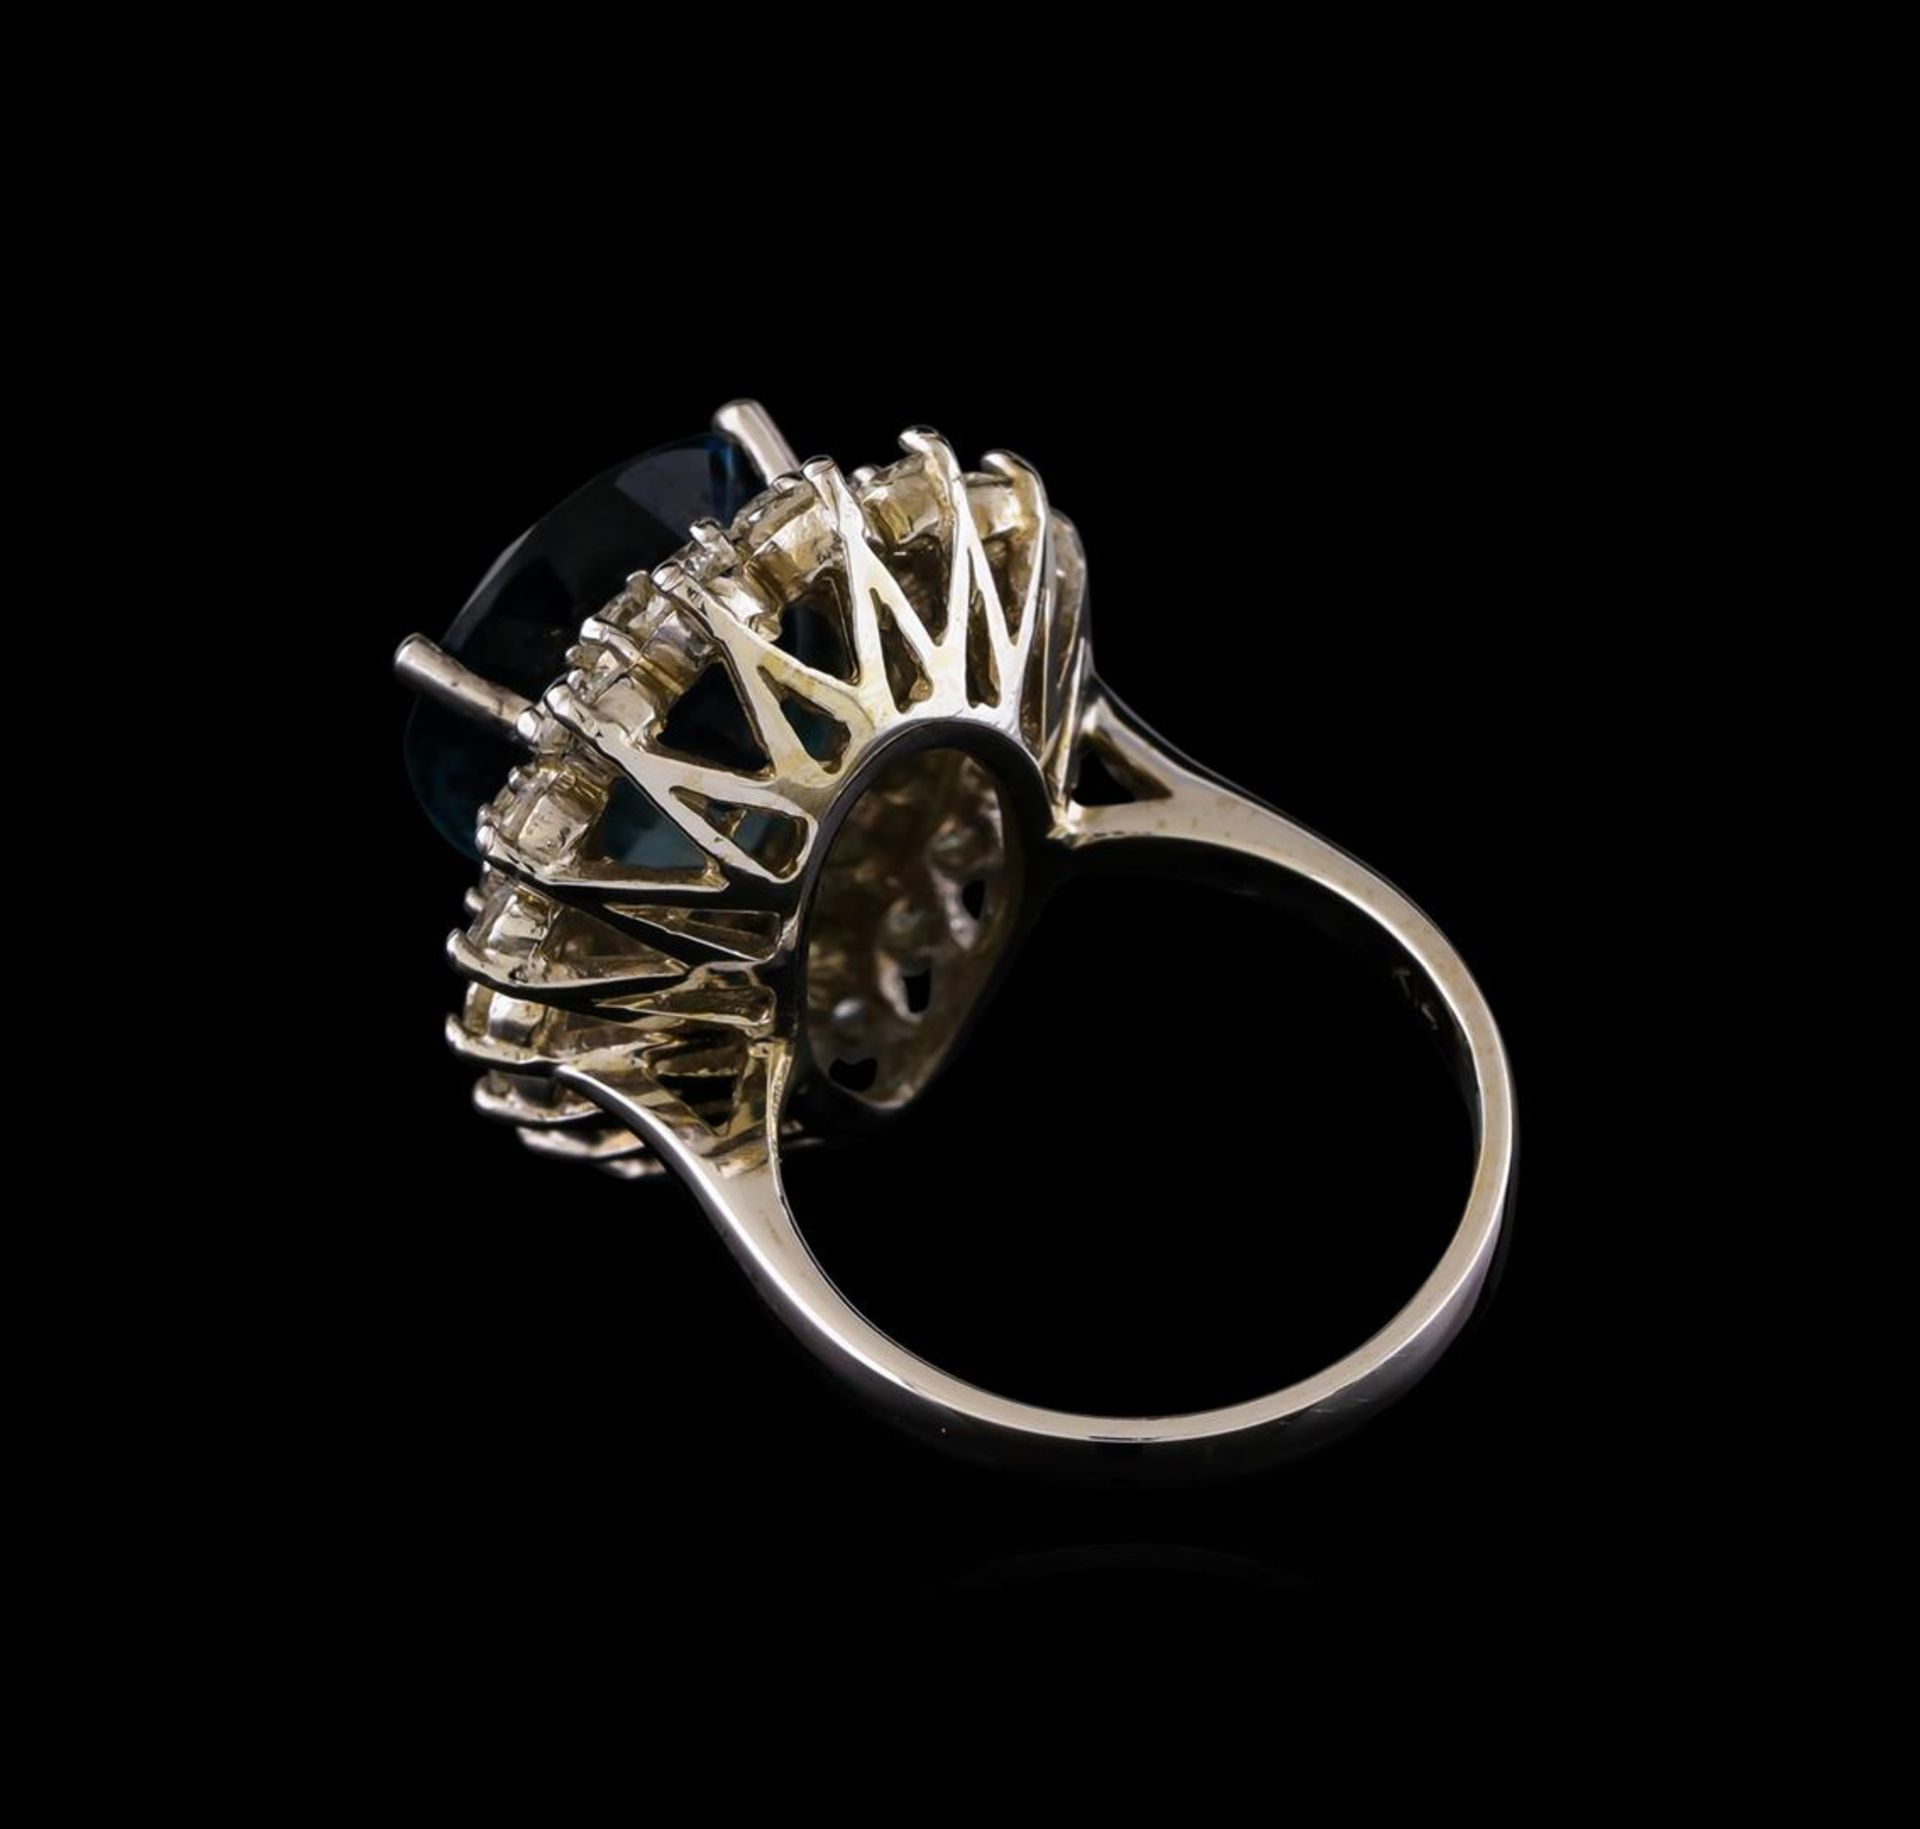 14KT White Gold 12.42 ctw Topaz and Diamond Ring - Image 3 of 5